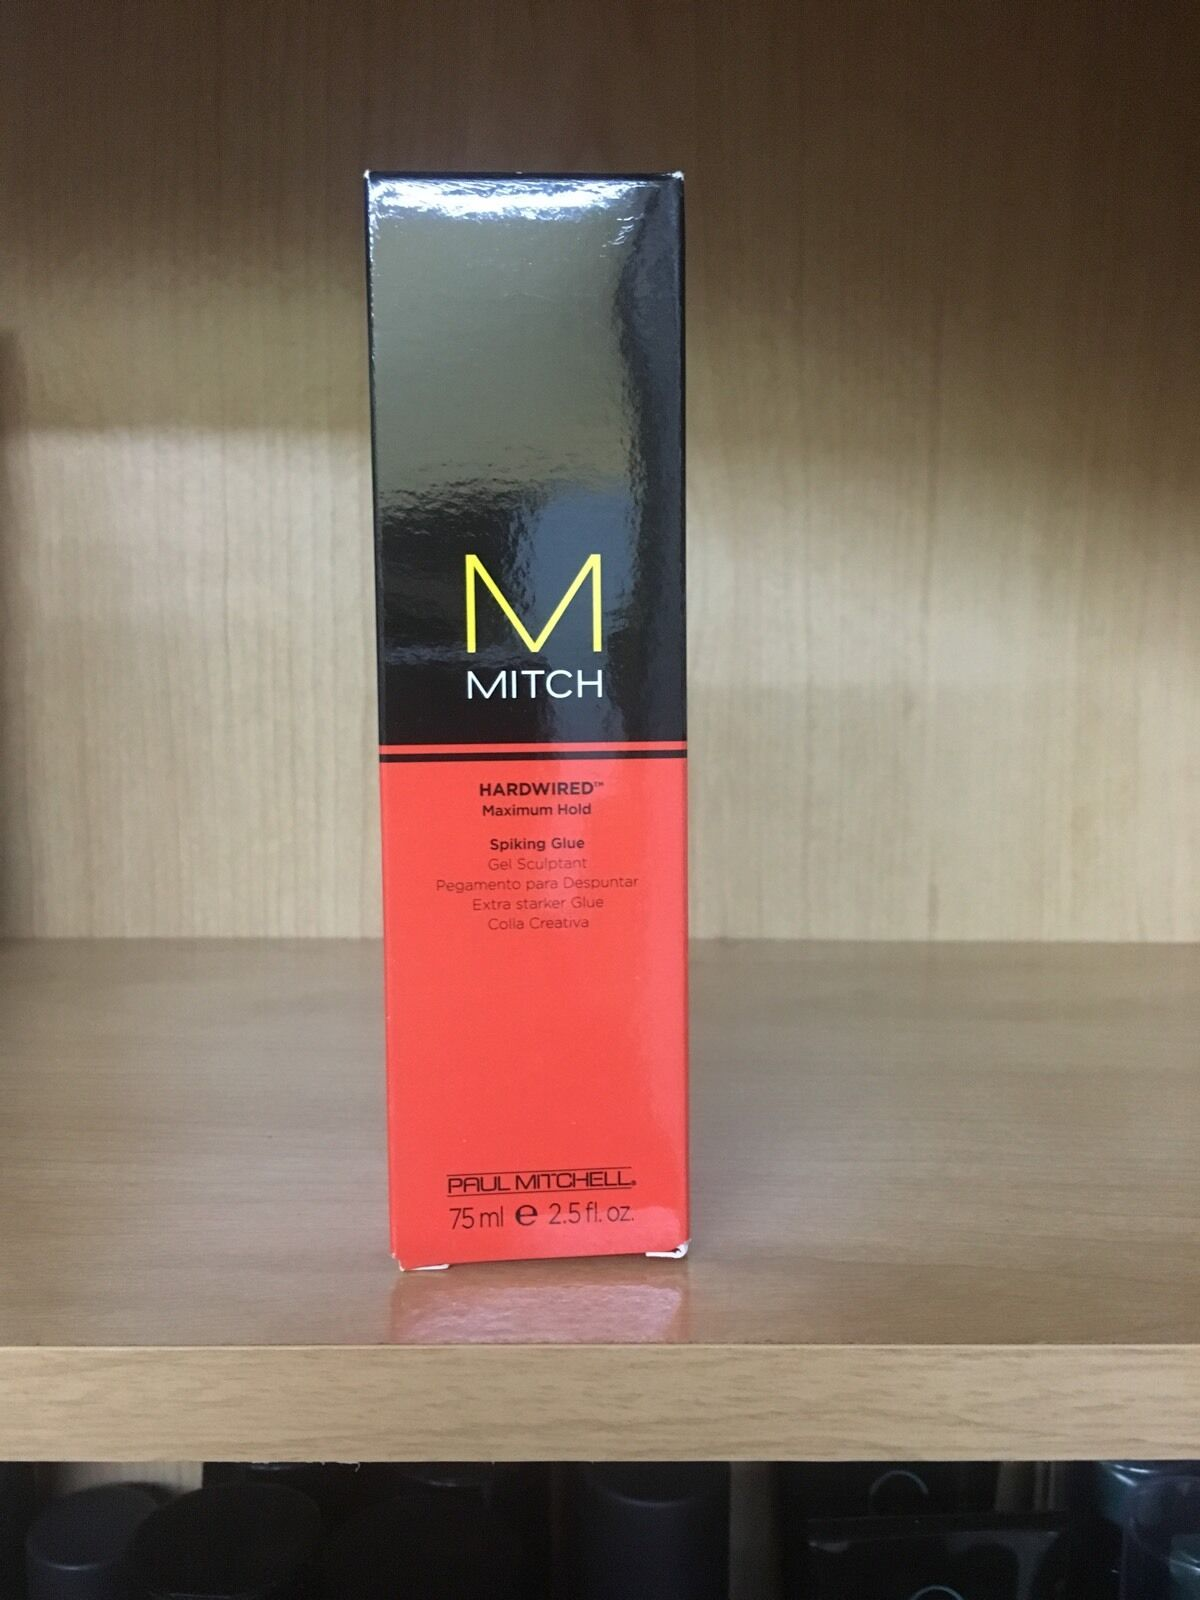 Paul Mitchell Mitch Hardwired Maximum Hold Spiking Glue 2.5o